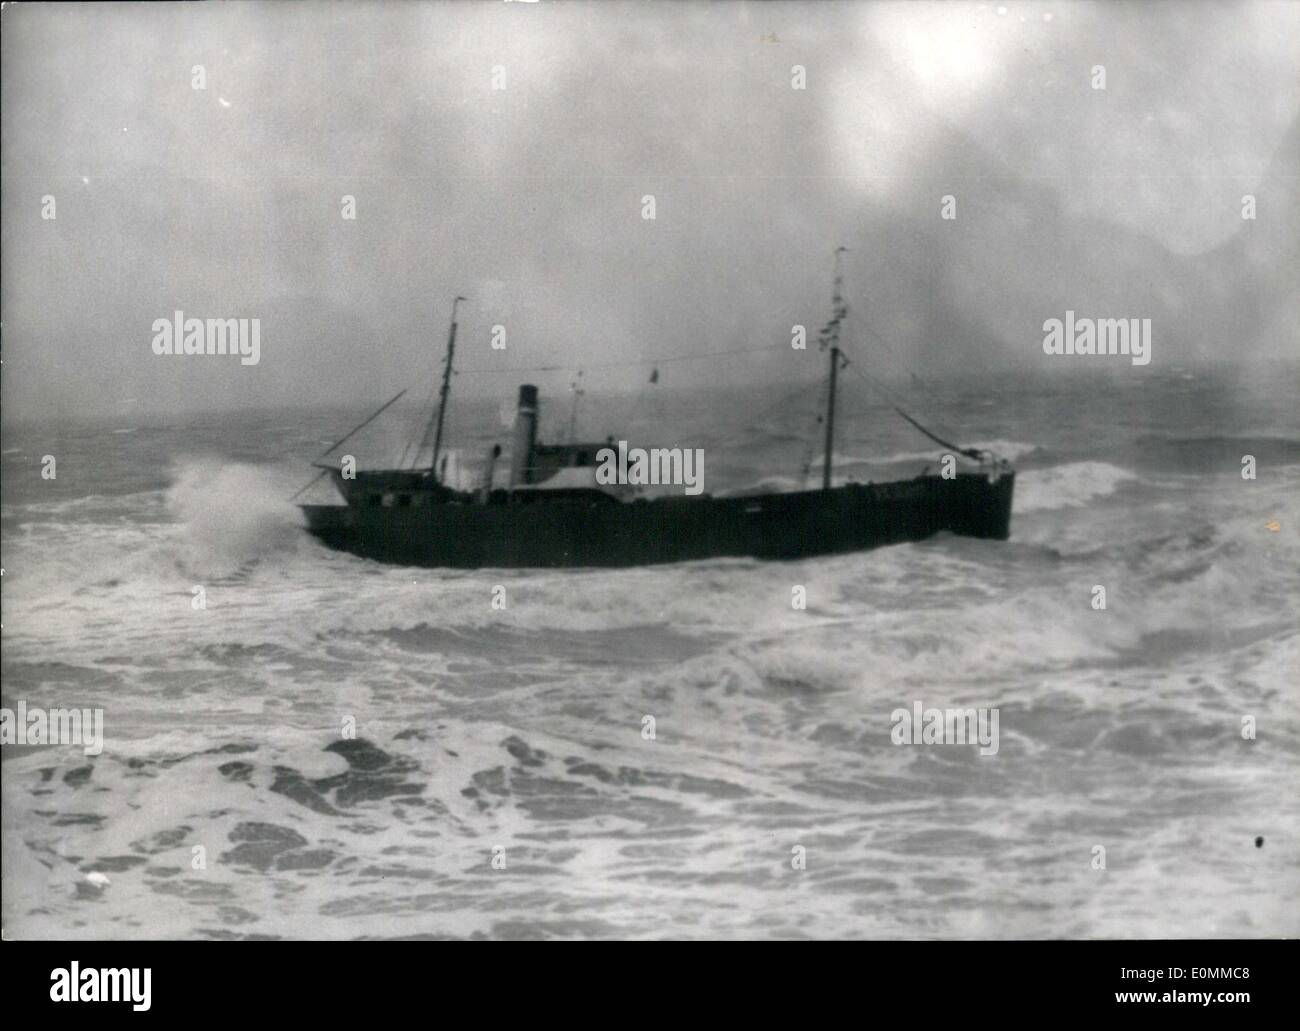 Dec. 12, 1955 - Dutch trawler aground near Gris-Nez: The Dutch Trawler ''Nelly'' went aground in a thick fog at Audresselles, near the cap Gris Nez. The captain of the ship and three men of the crew remained on board. The grounded trawler. - Stock Image